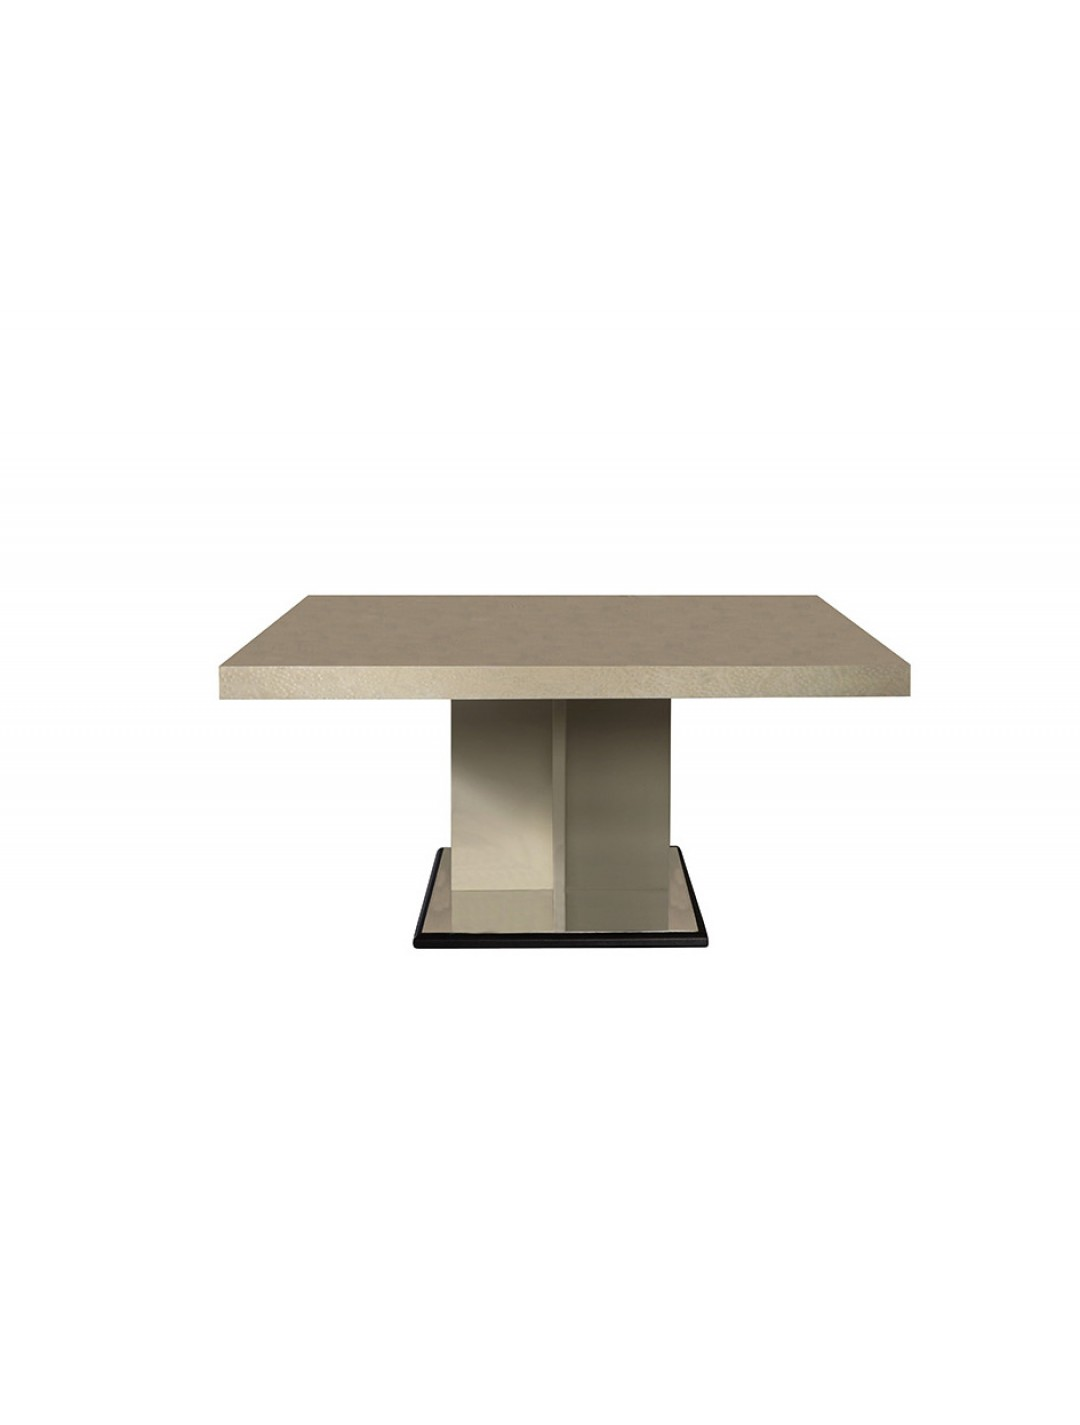 IRIS DINING TABLE,  ERABLE VENEER (MINOR MAPLE) ON TOP, FINISH: SHINY NATURAL, STAND: BEIGE ARTIFICIAL LEATHER/BLACK LEATHER 93* AND STEEL, 160*160